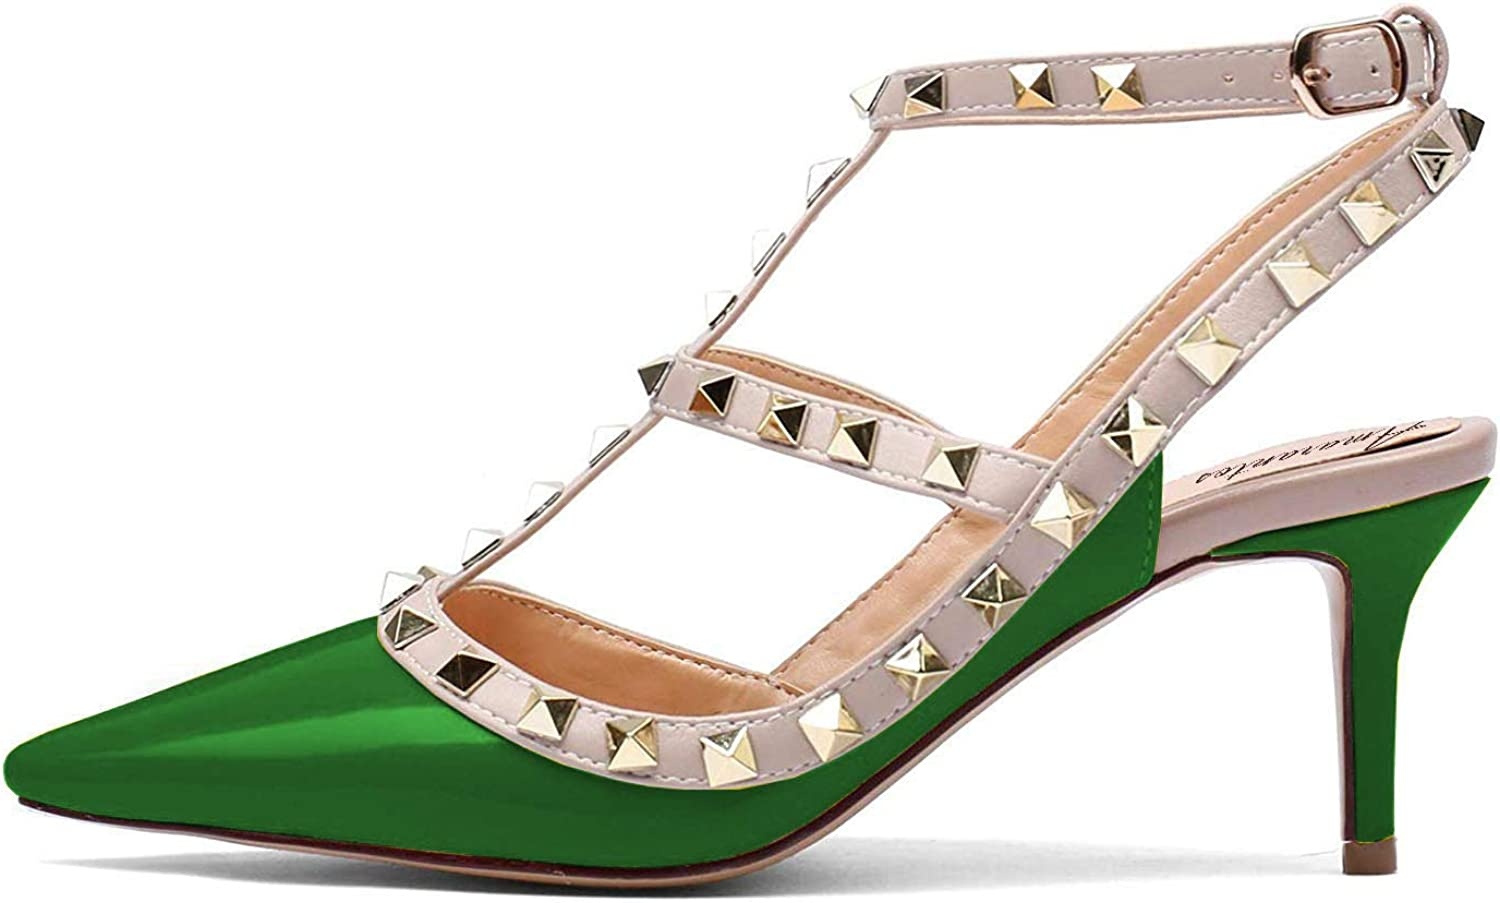 Amarantos Women's Pointed Toe Kitten Heel Strappy Sandals Studded Ankle Strap Pumps shoes